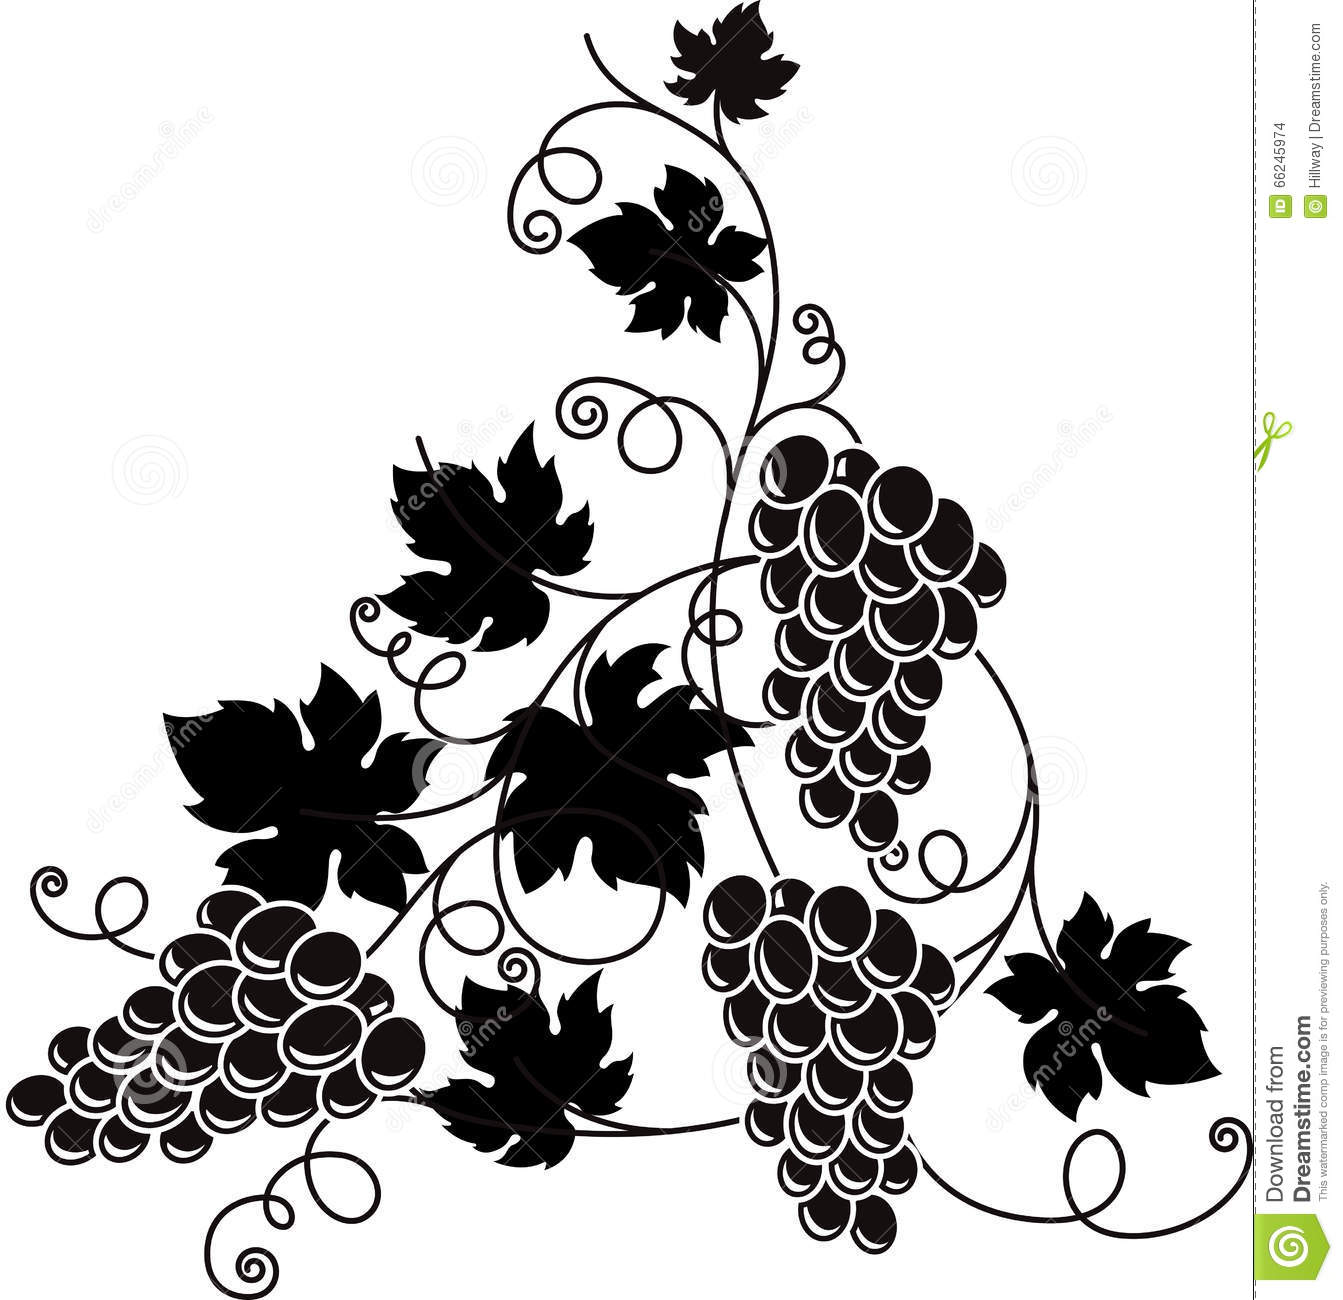 Grape Branch With Bunch Of Grapes And Leaves. Stock Vector ...